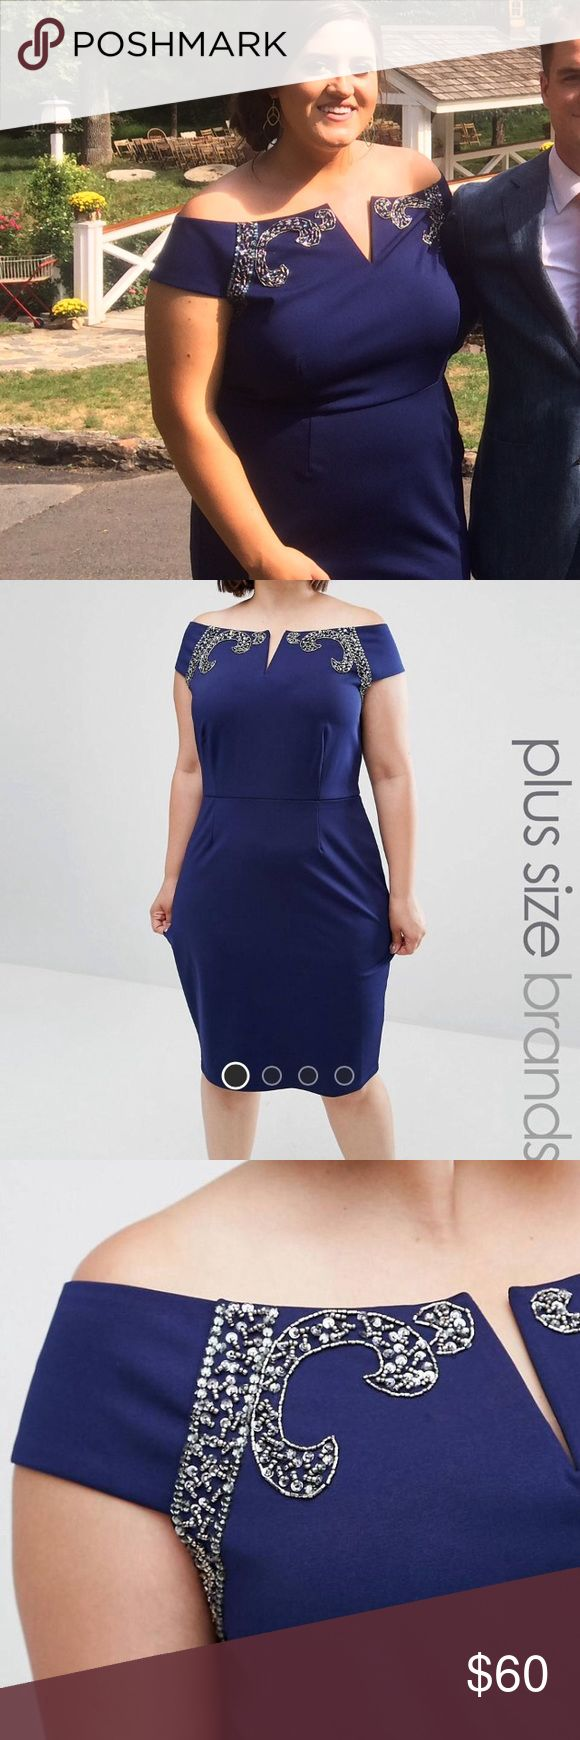 Asos Curve dress Beautifully beaded off the shoulder dress. Wore it to my brothers wedding and it was such a great dress! Very comfy and beautiful! ASOS Curve Dresses Mini